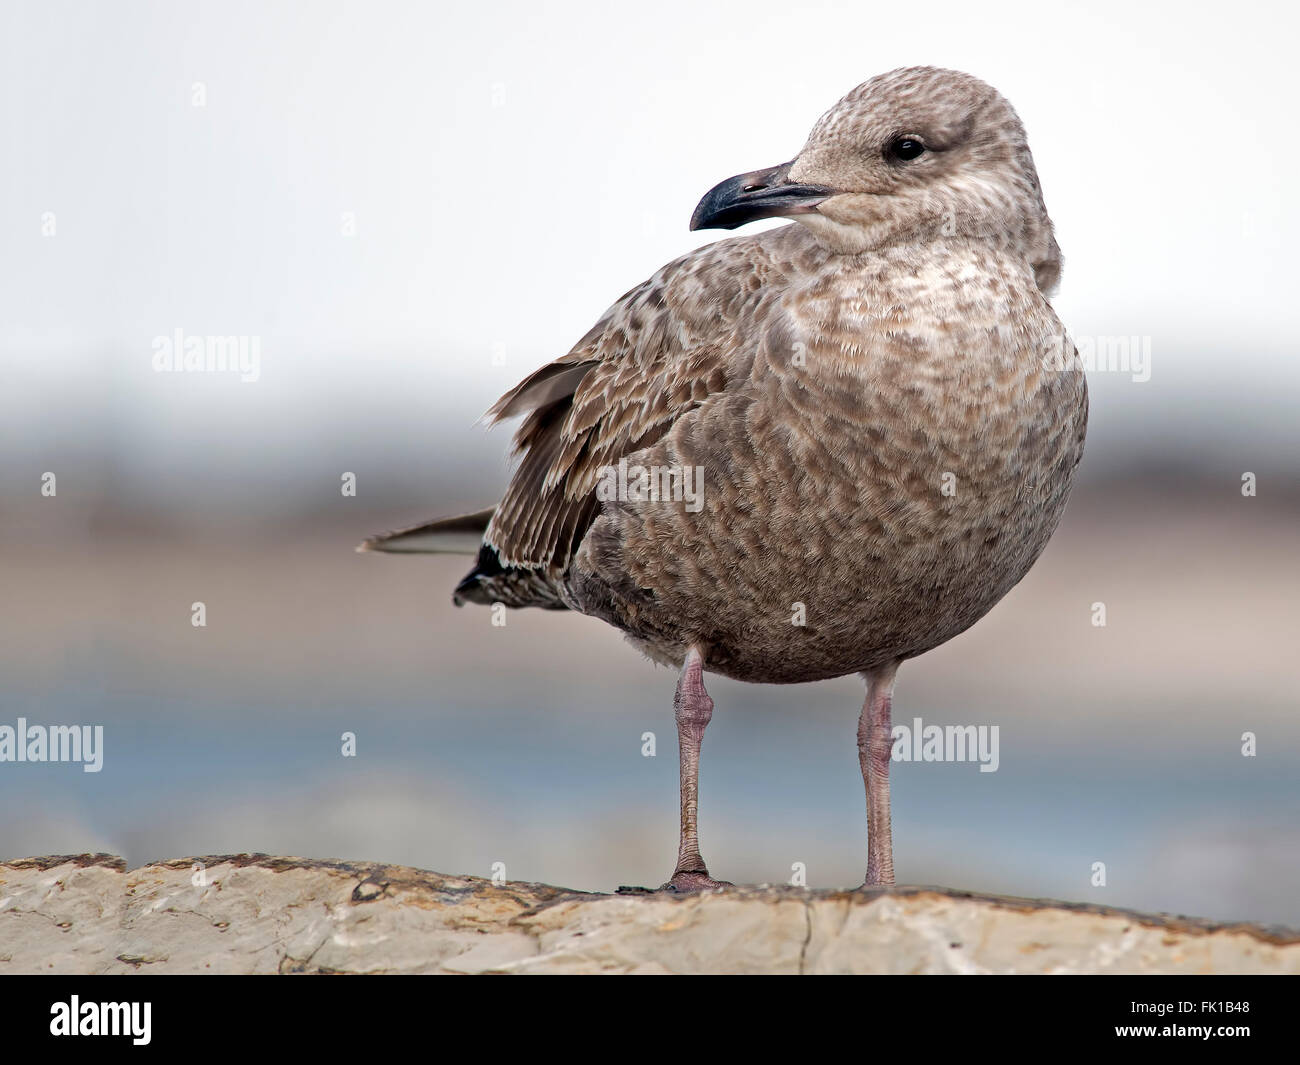 Herring Gull on Jetty - Stock Image